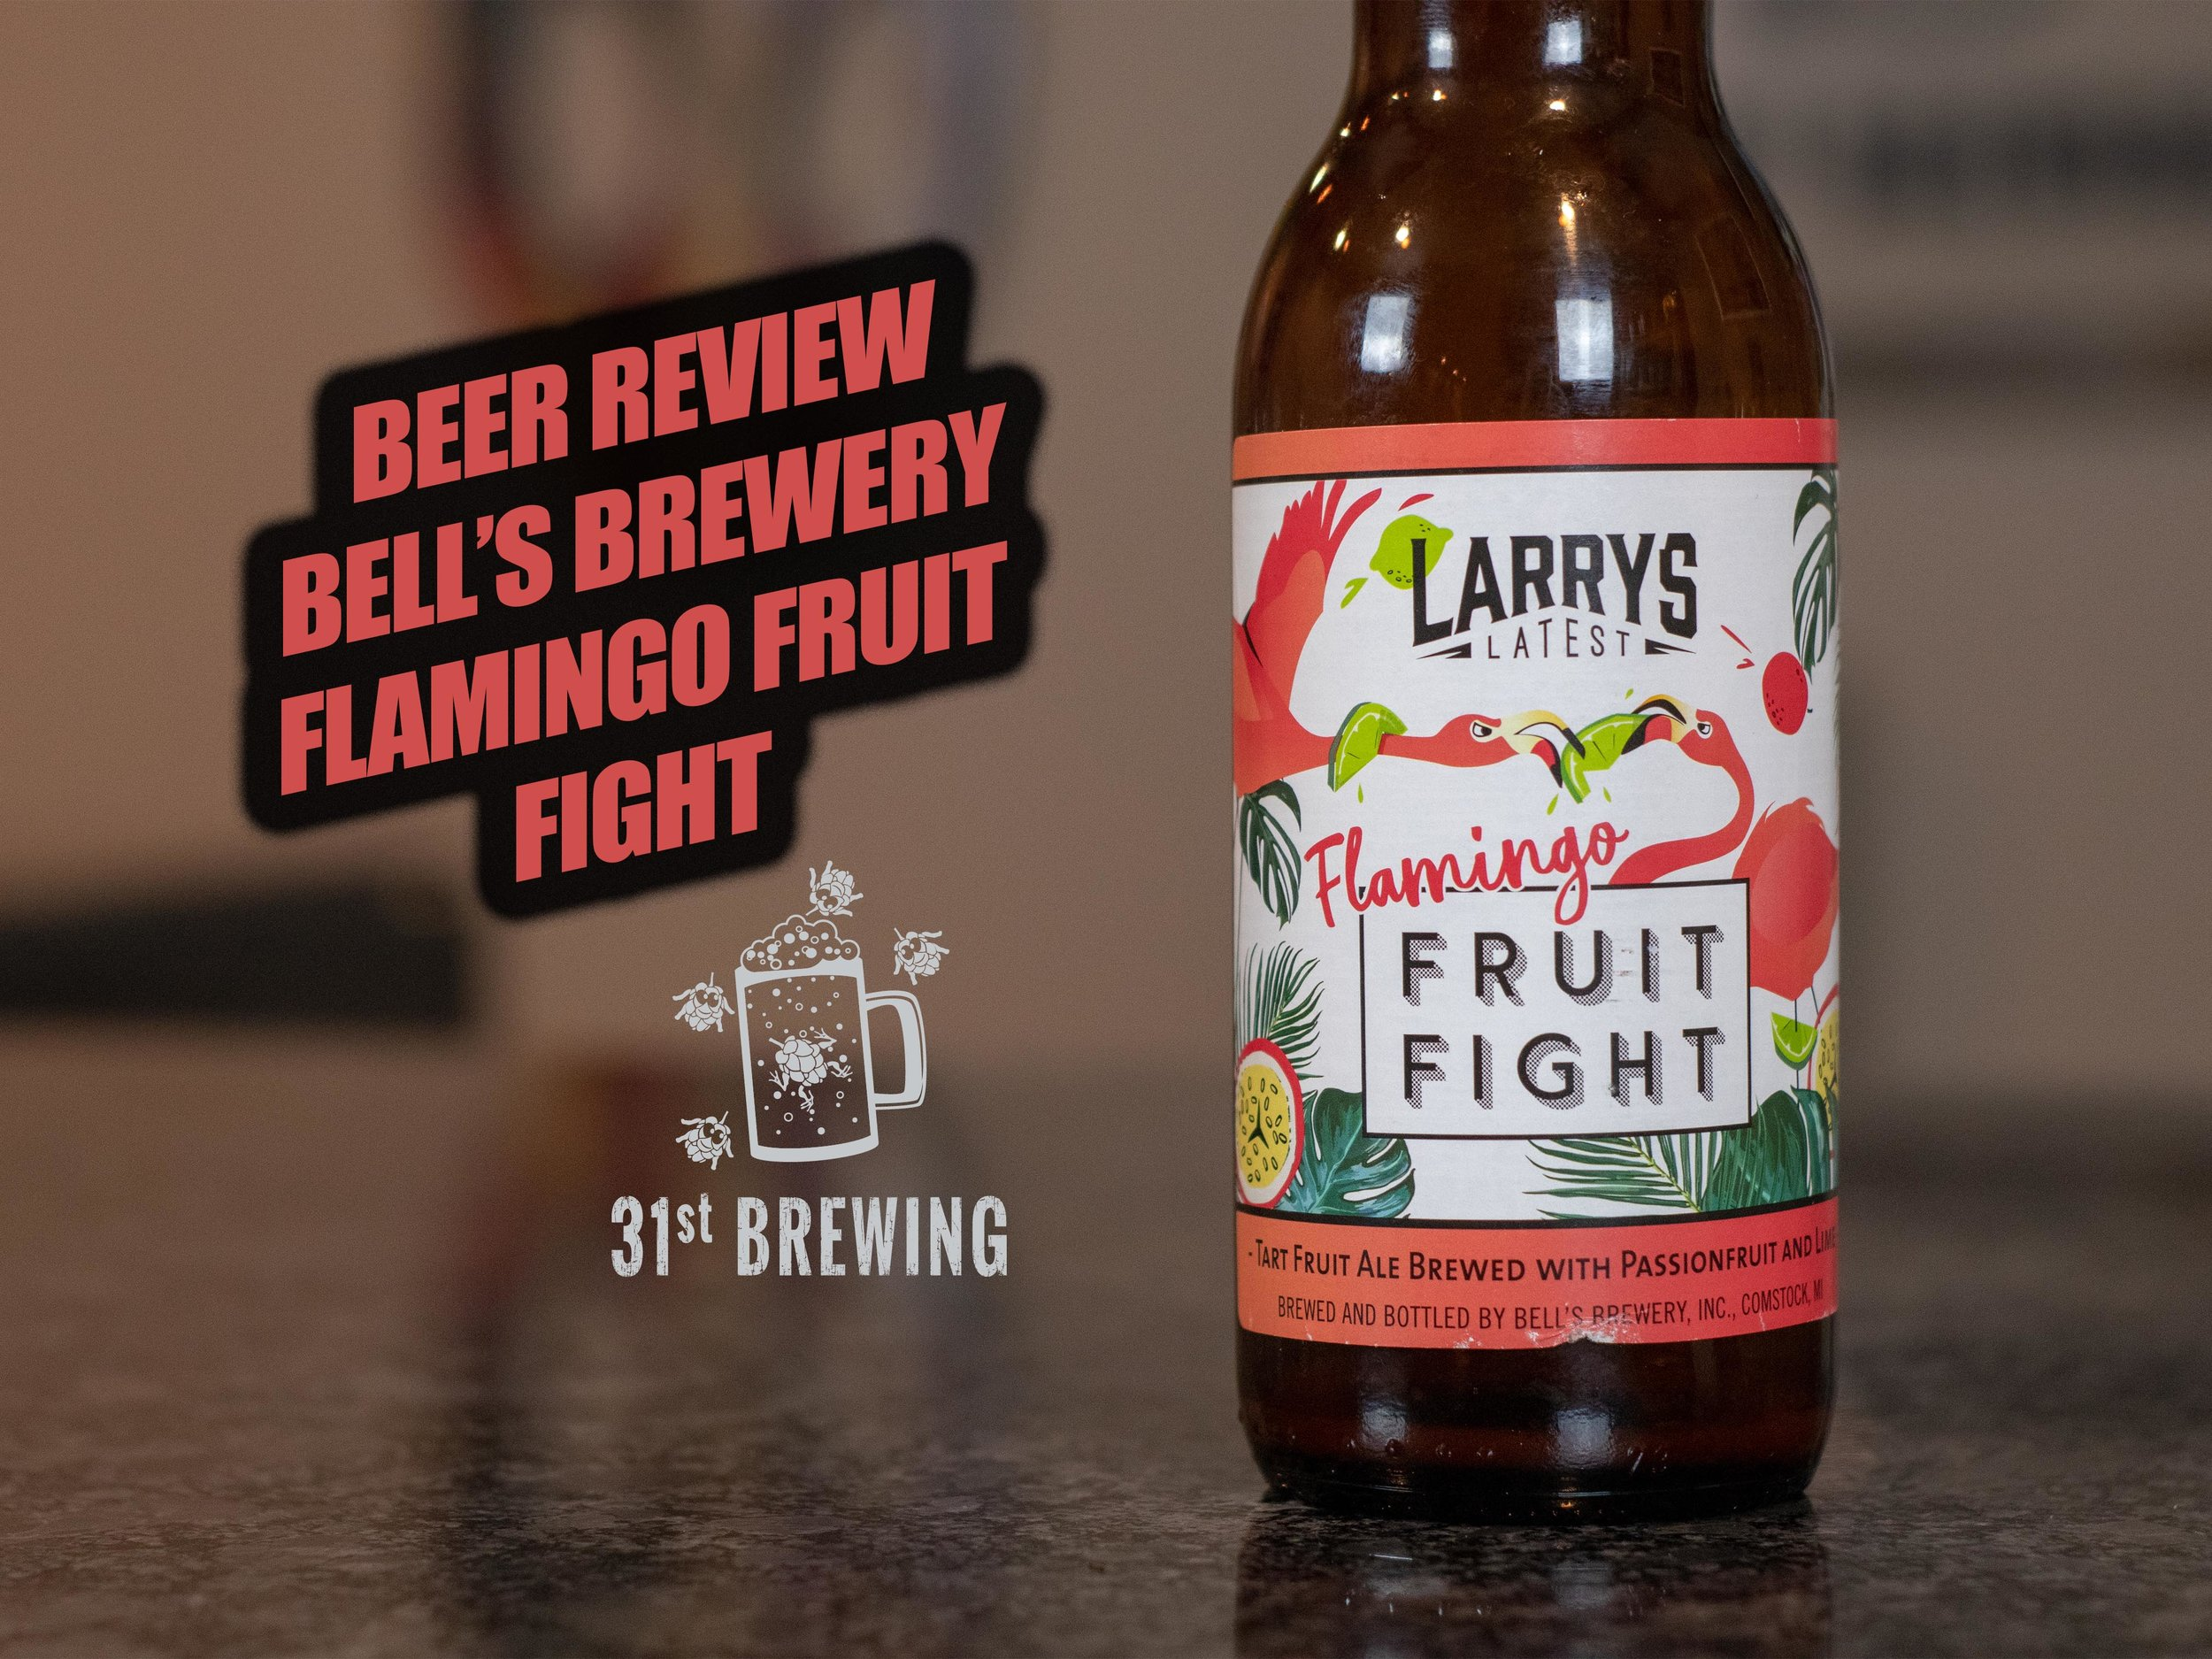 Flamingo Fruit Fight 5% ABV - Want to see the Video Review? Click on the image